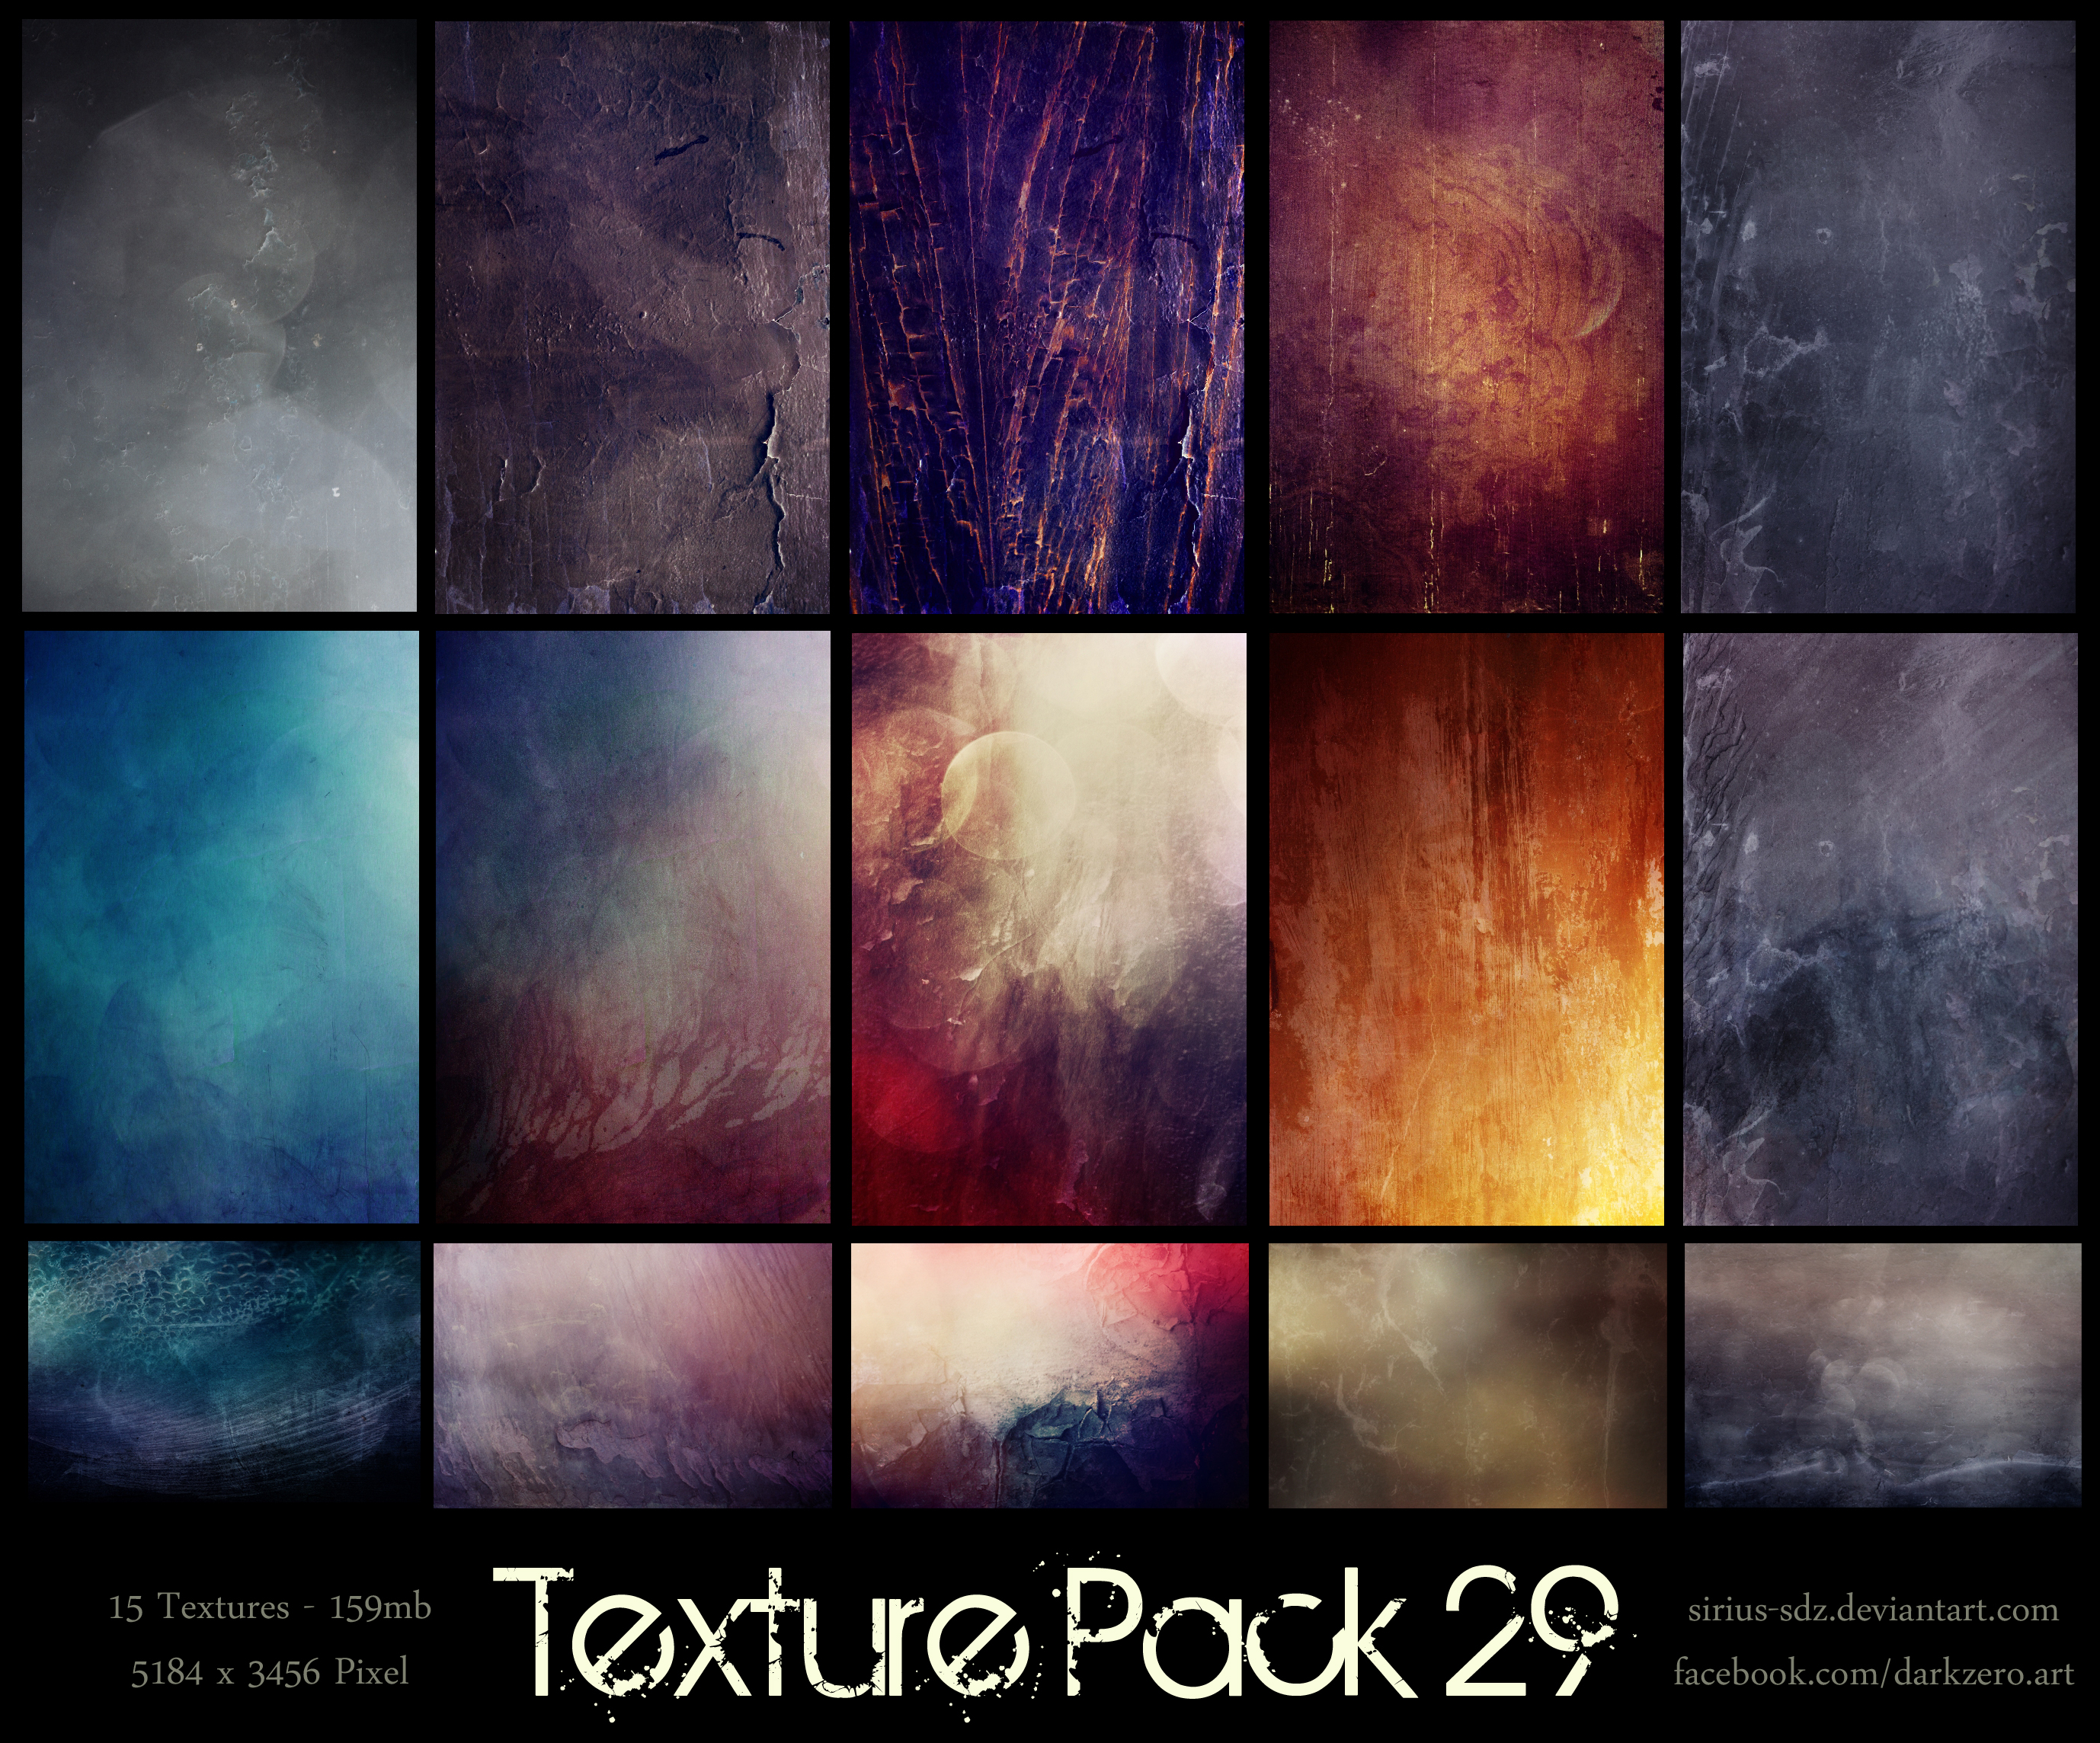 Texture Pack 29 by Sirius-sdz